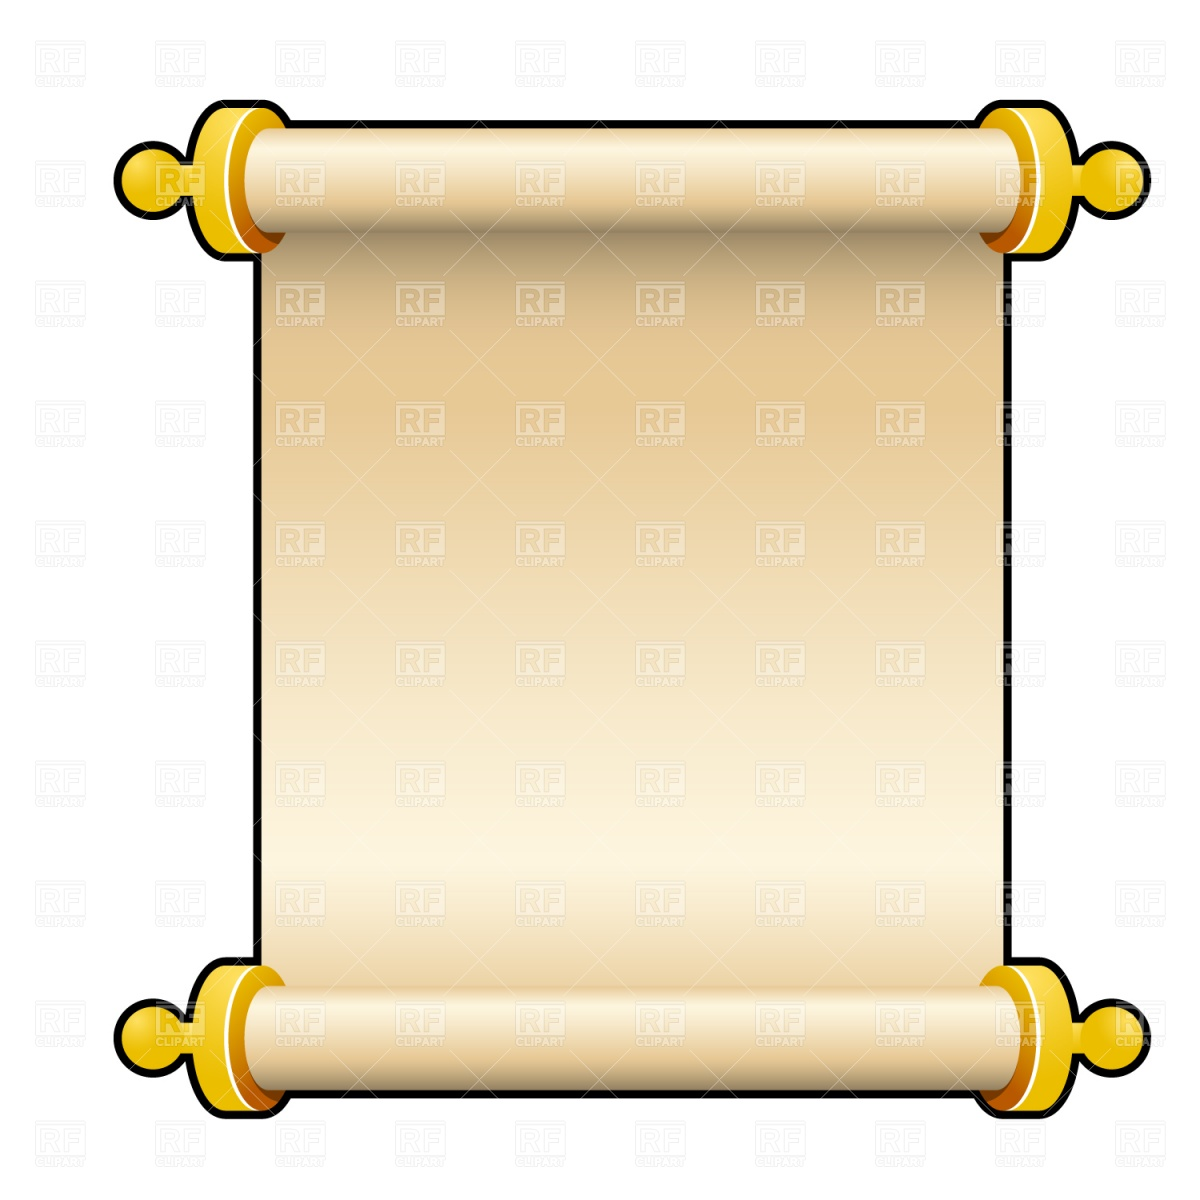 hight resolution of 1200x1200 scripture clipart scroll